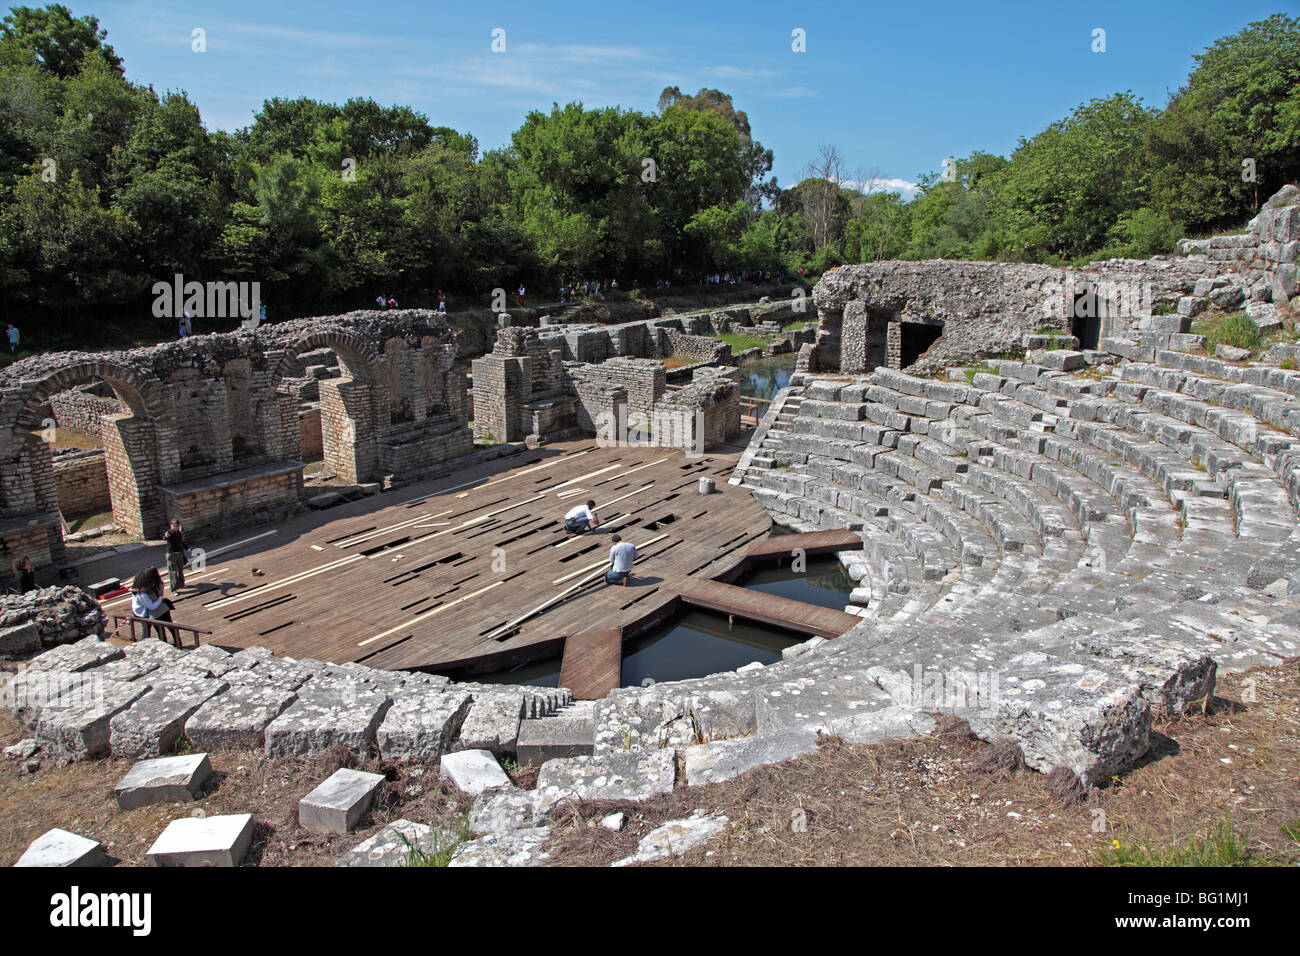 3rd Century AD Theater at Butrint National Park, Albania - Stock Image